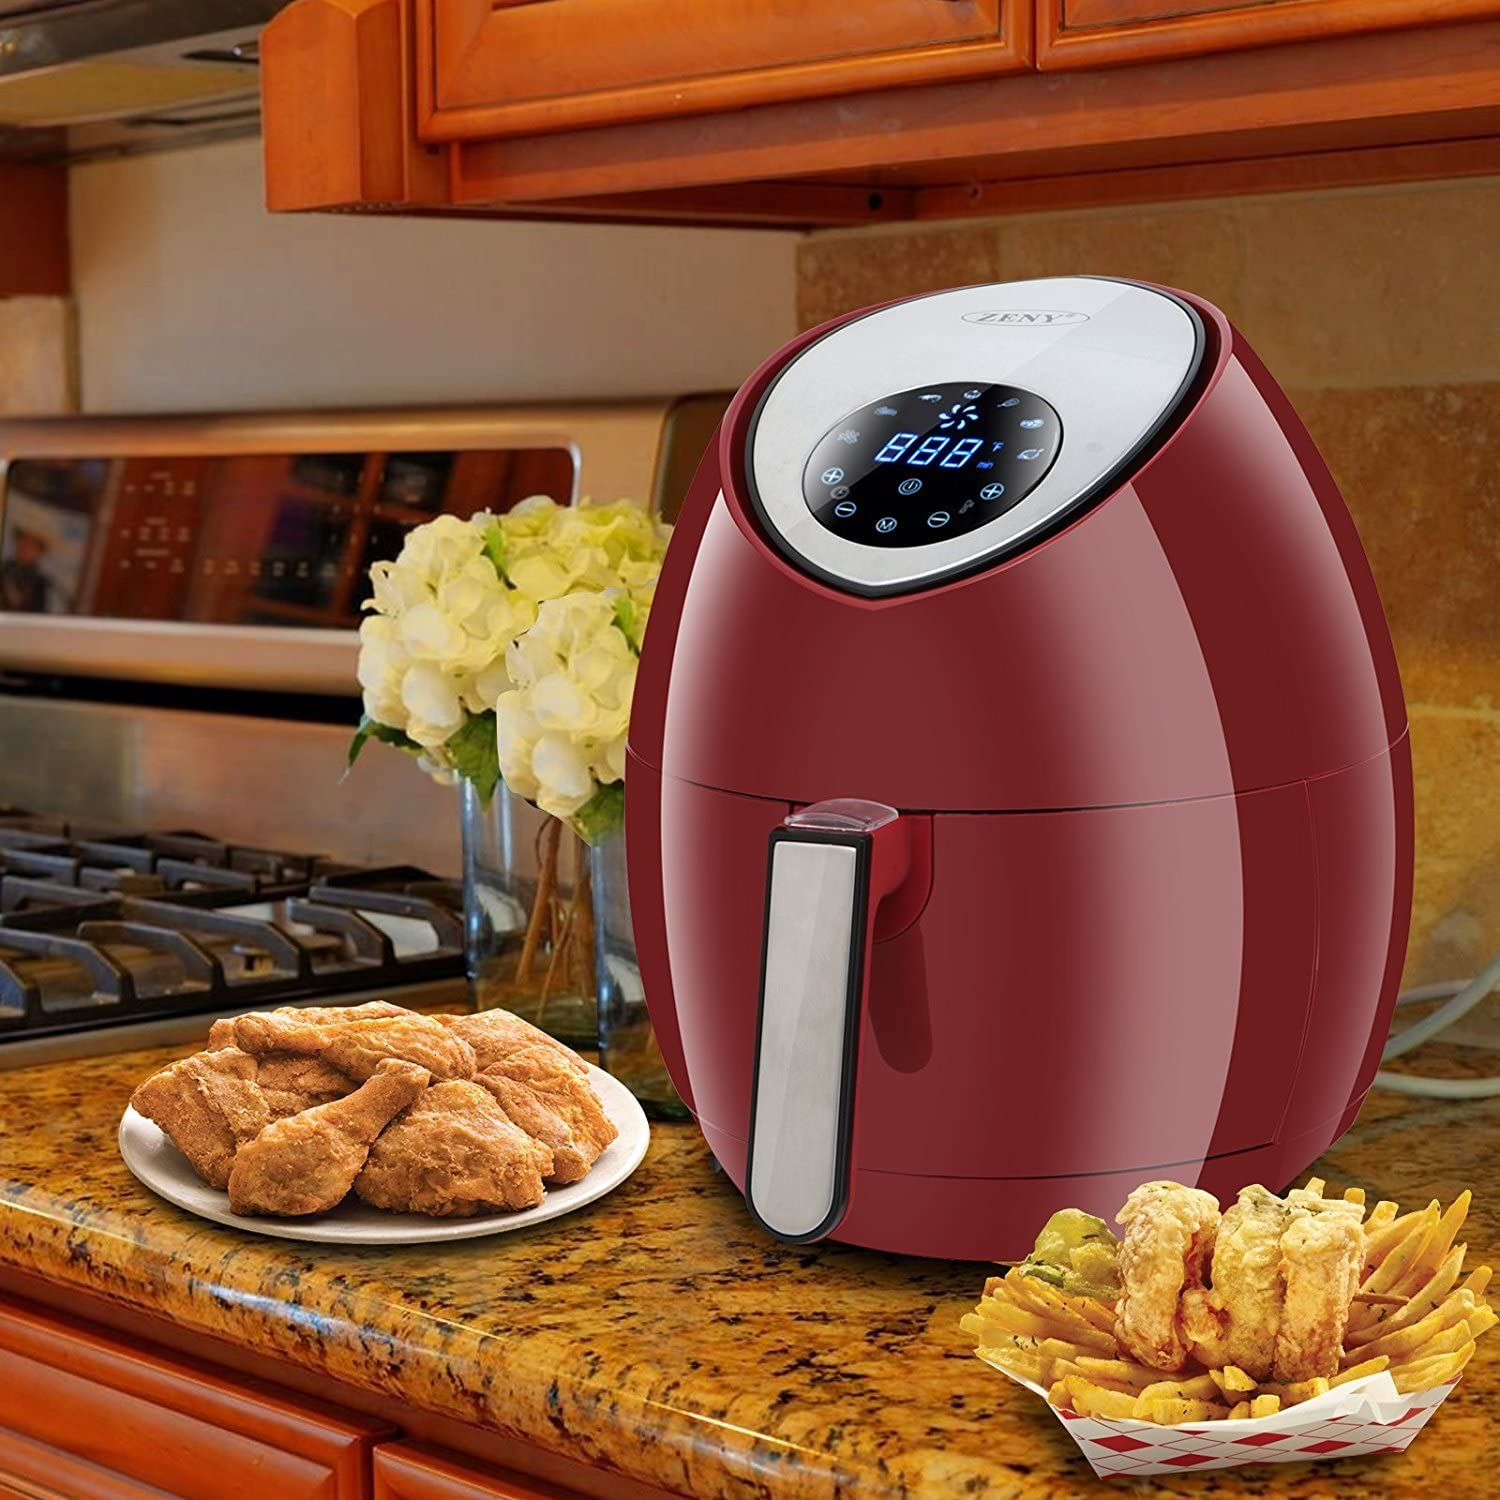 ZENY Burgundy 7-in-1 Touch Screen Control Electric Air Fryer 1500W, 3.7QT, 7 Presets, W Recipes CookBook